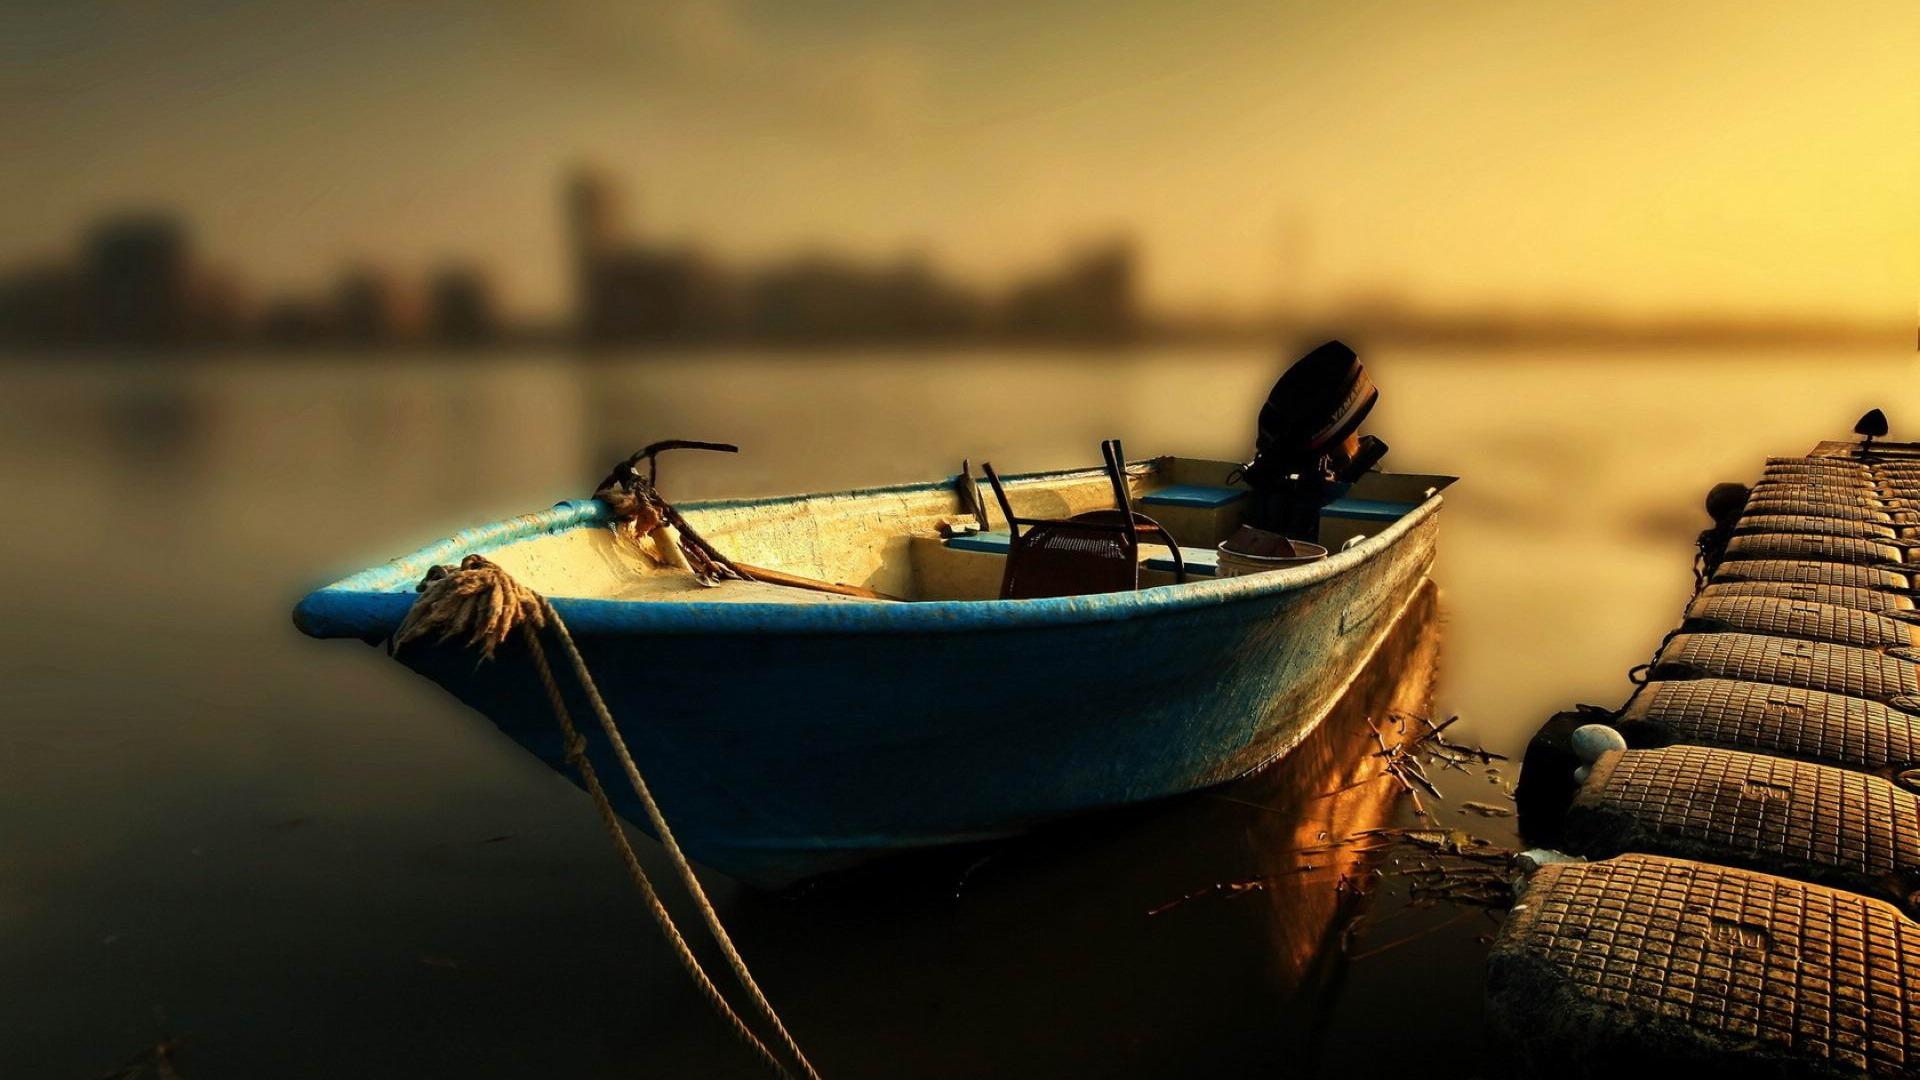 Parked_boat-2012_landscape_Featured_Wallpaper_1920x1080.jpg